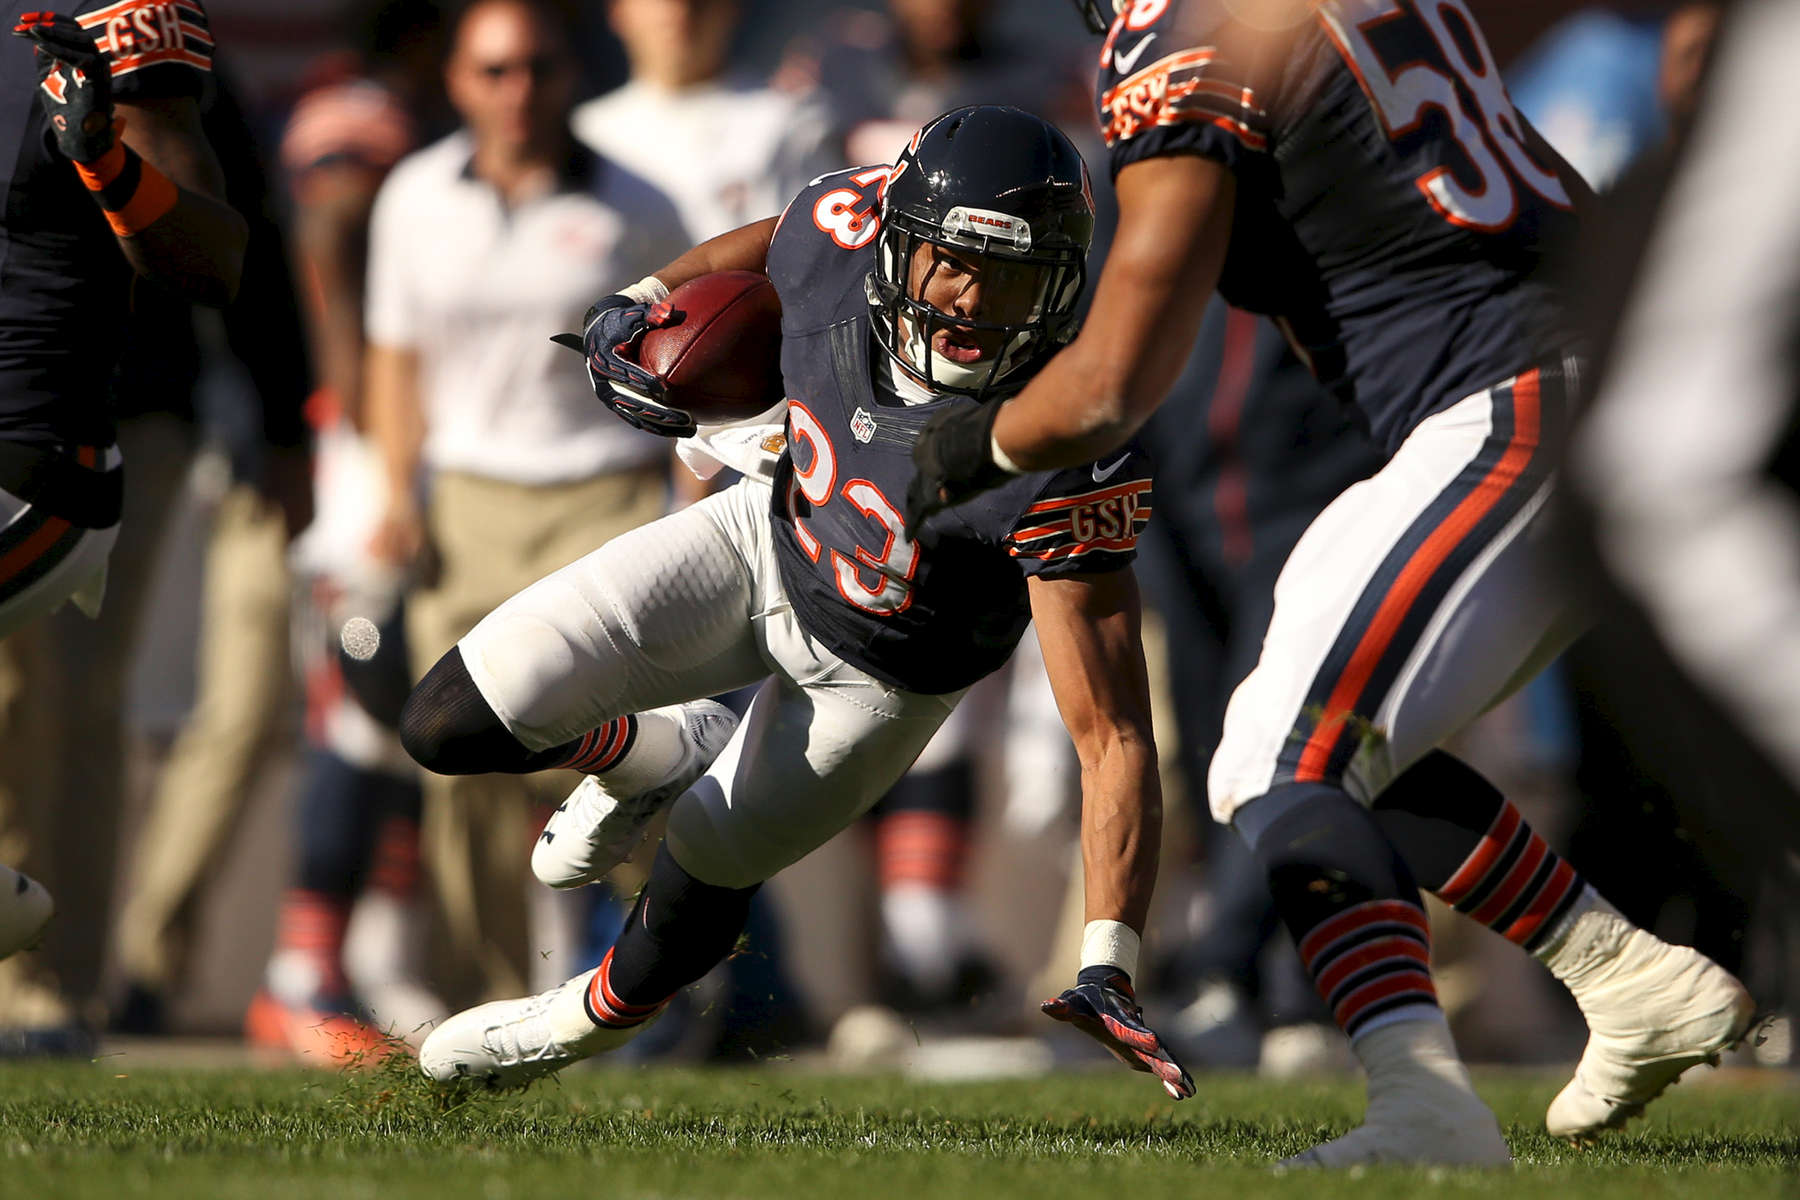 Chicago Bears cornerback Kyle Fuller looks up as he slips while trying to gain yards during the first half of an NFL game between the Chicago Bears and the Minnesota Vikings at Soldier Field in Chicago.